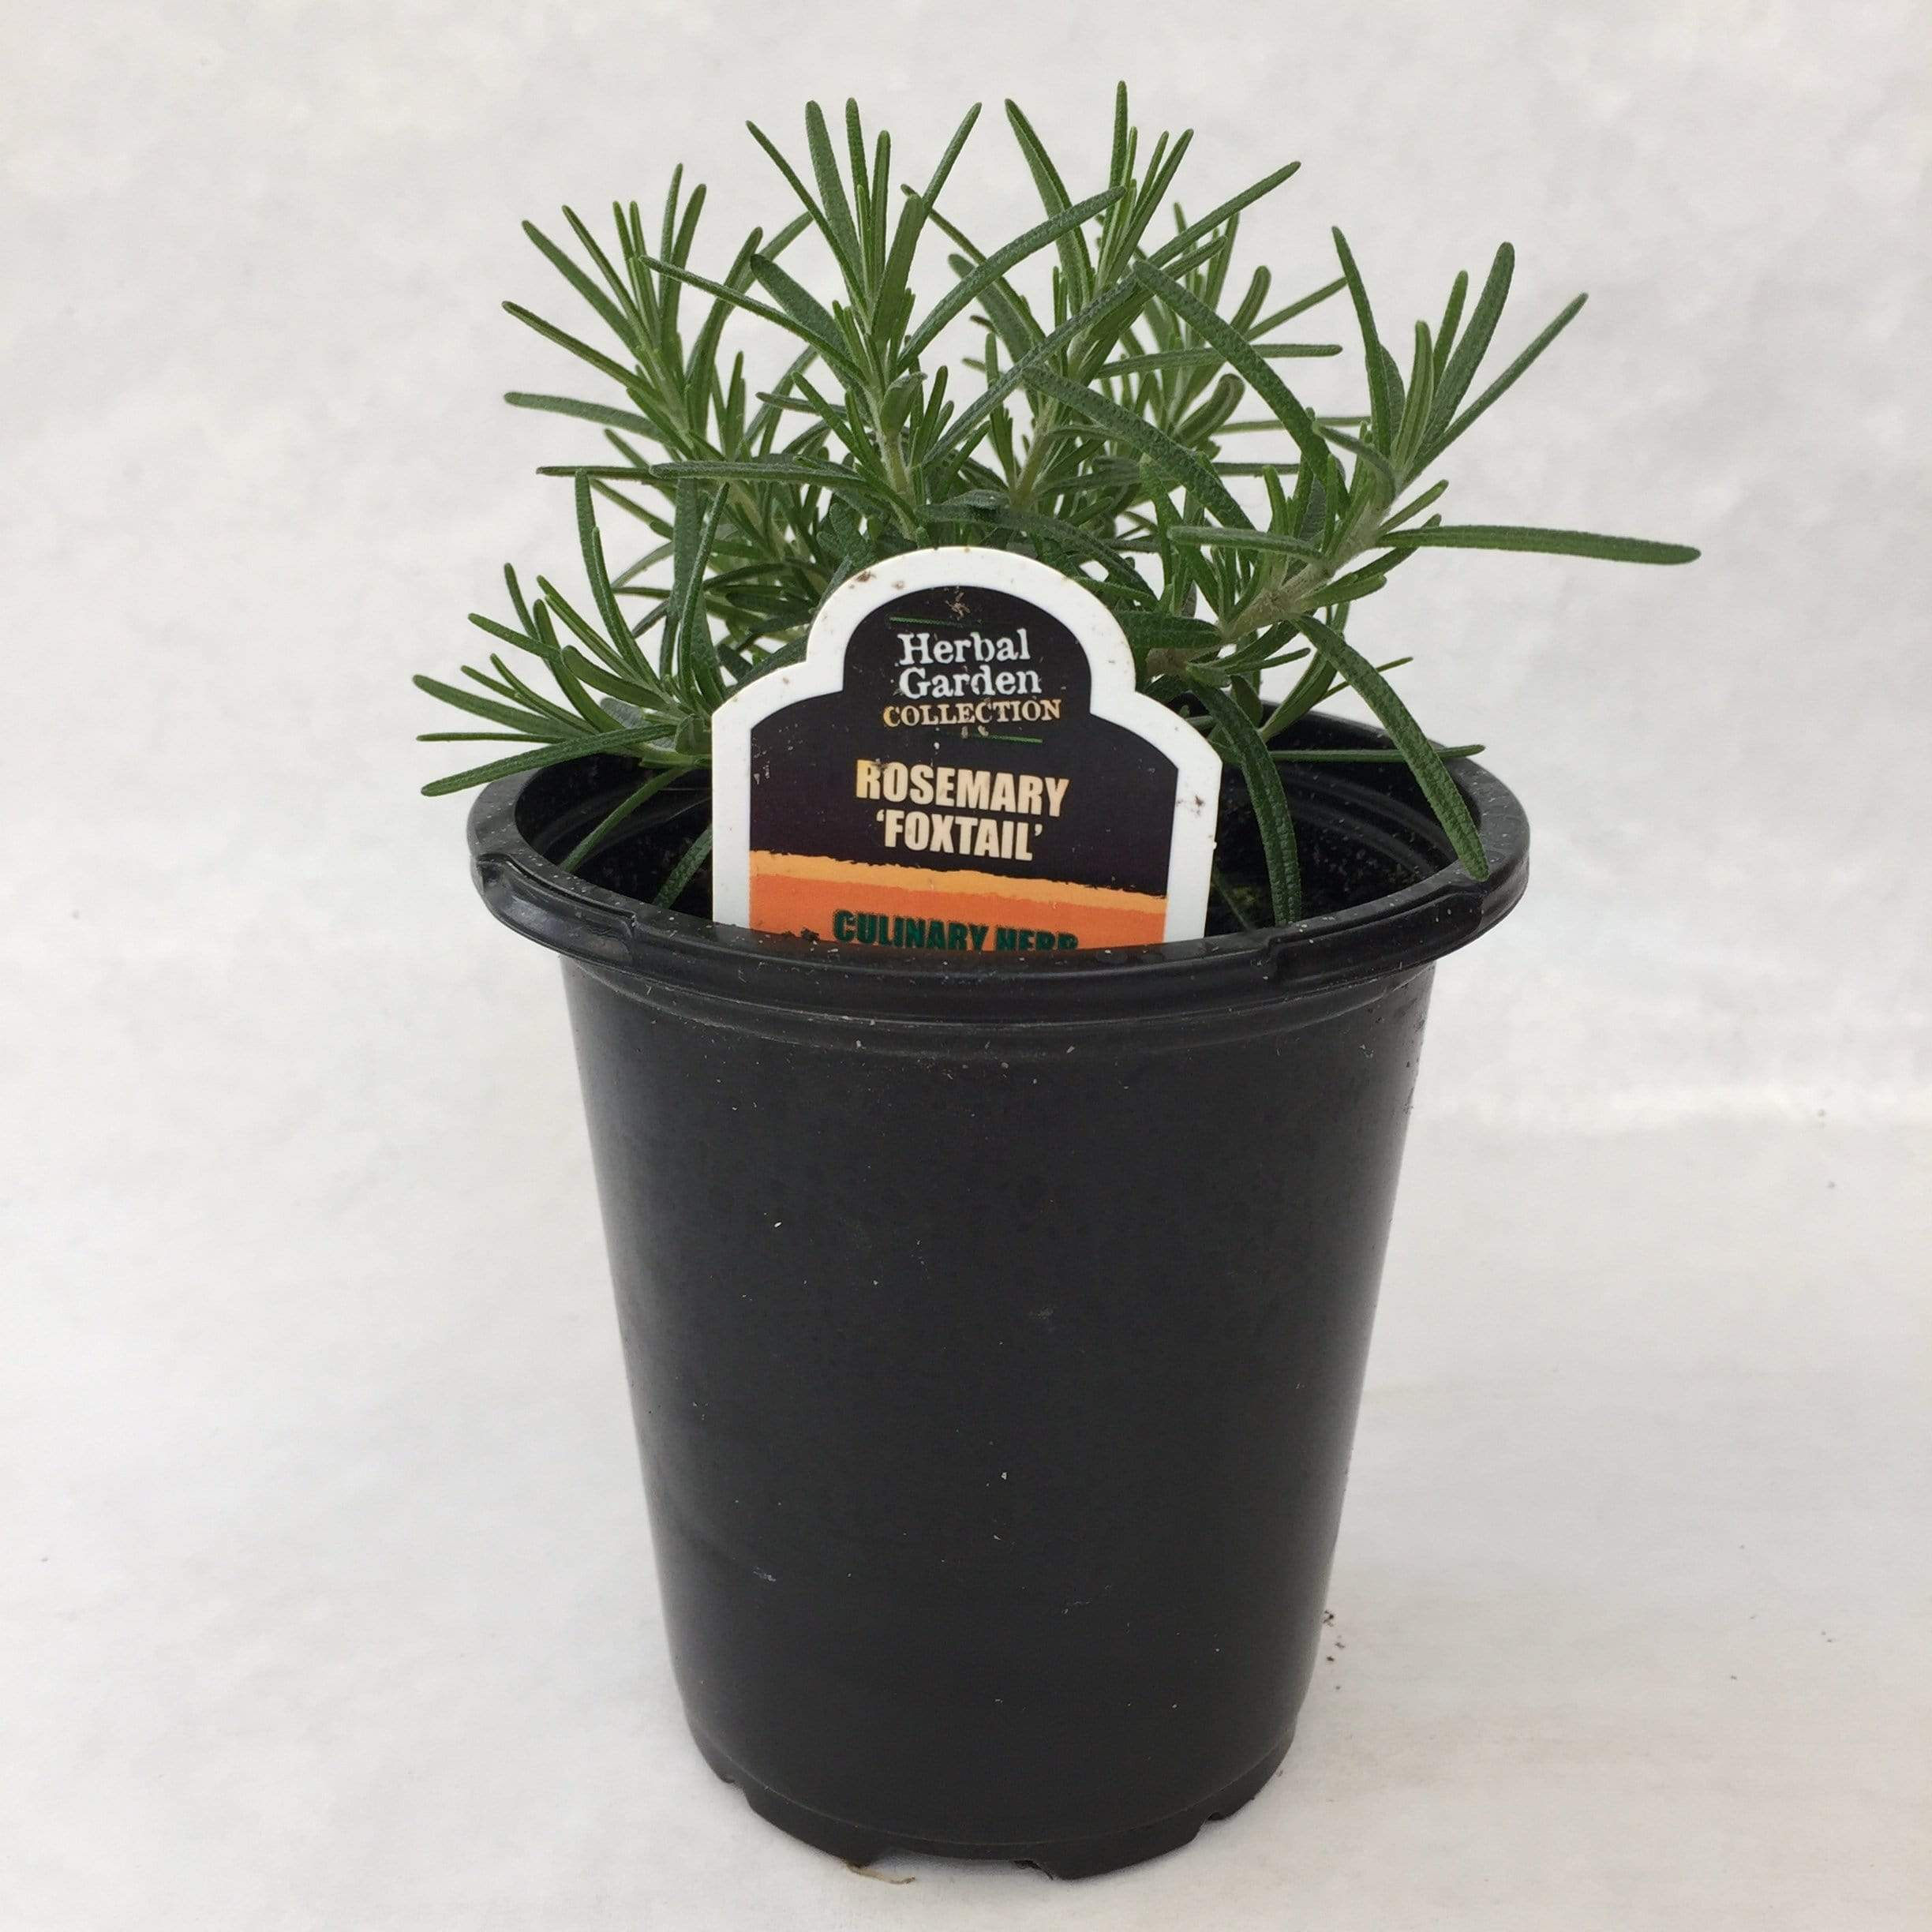 "The Plant Farm Herbs 4"" Plant Rosemary Foxtail Herb"